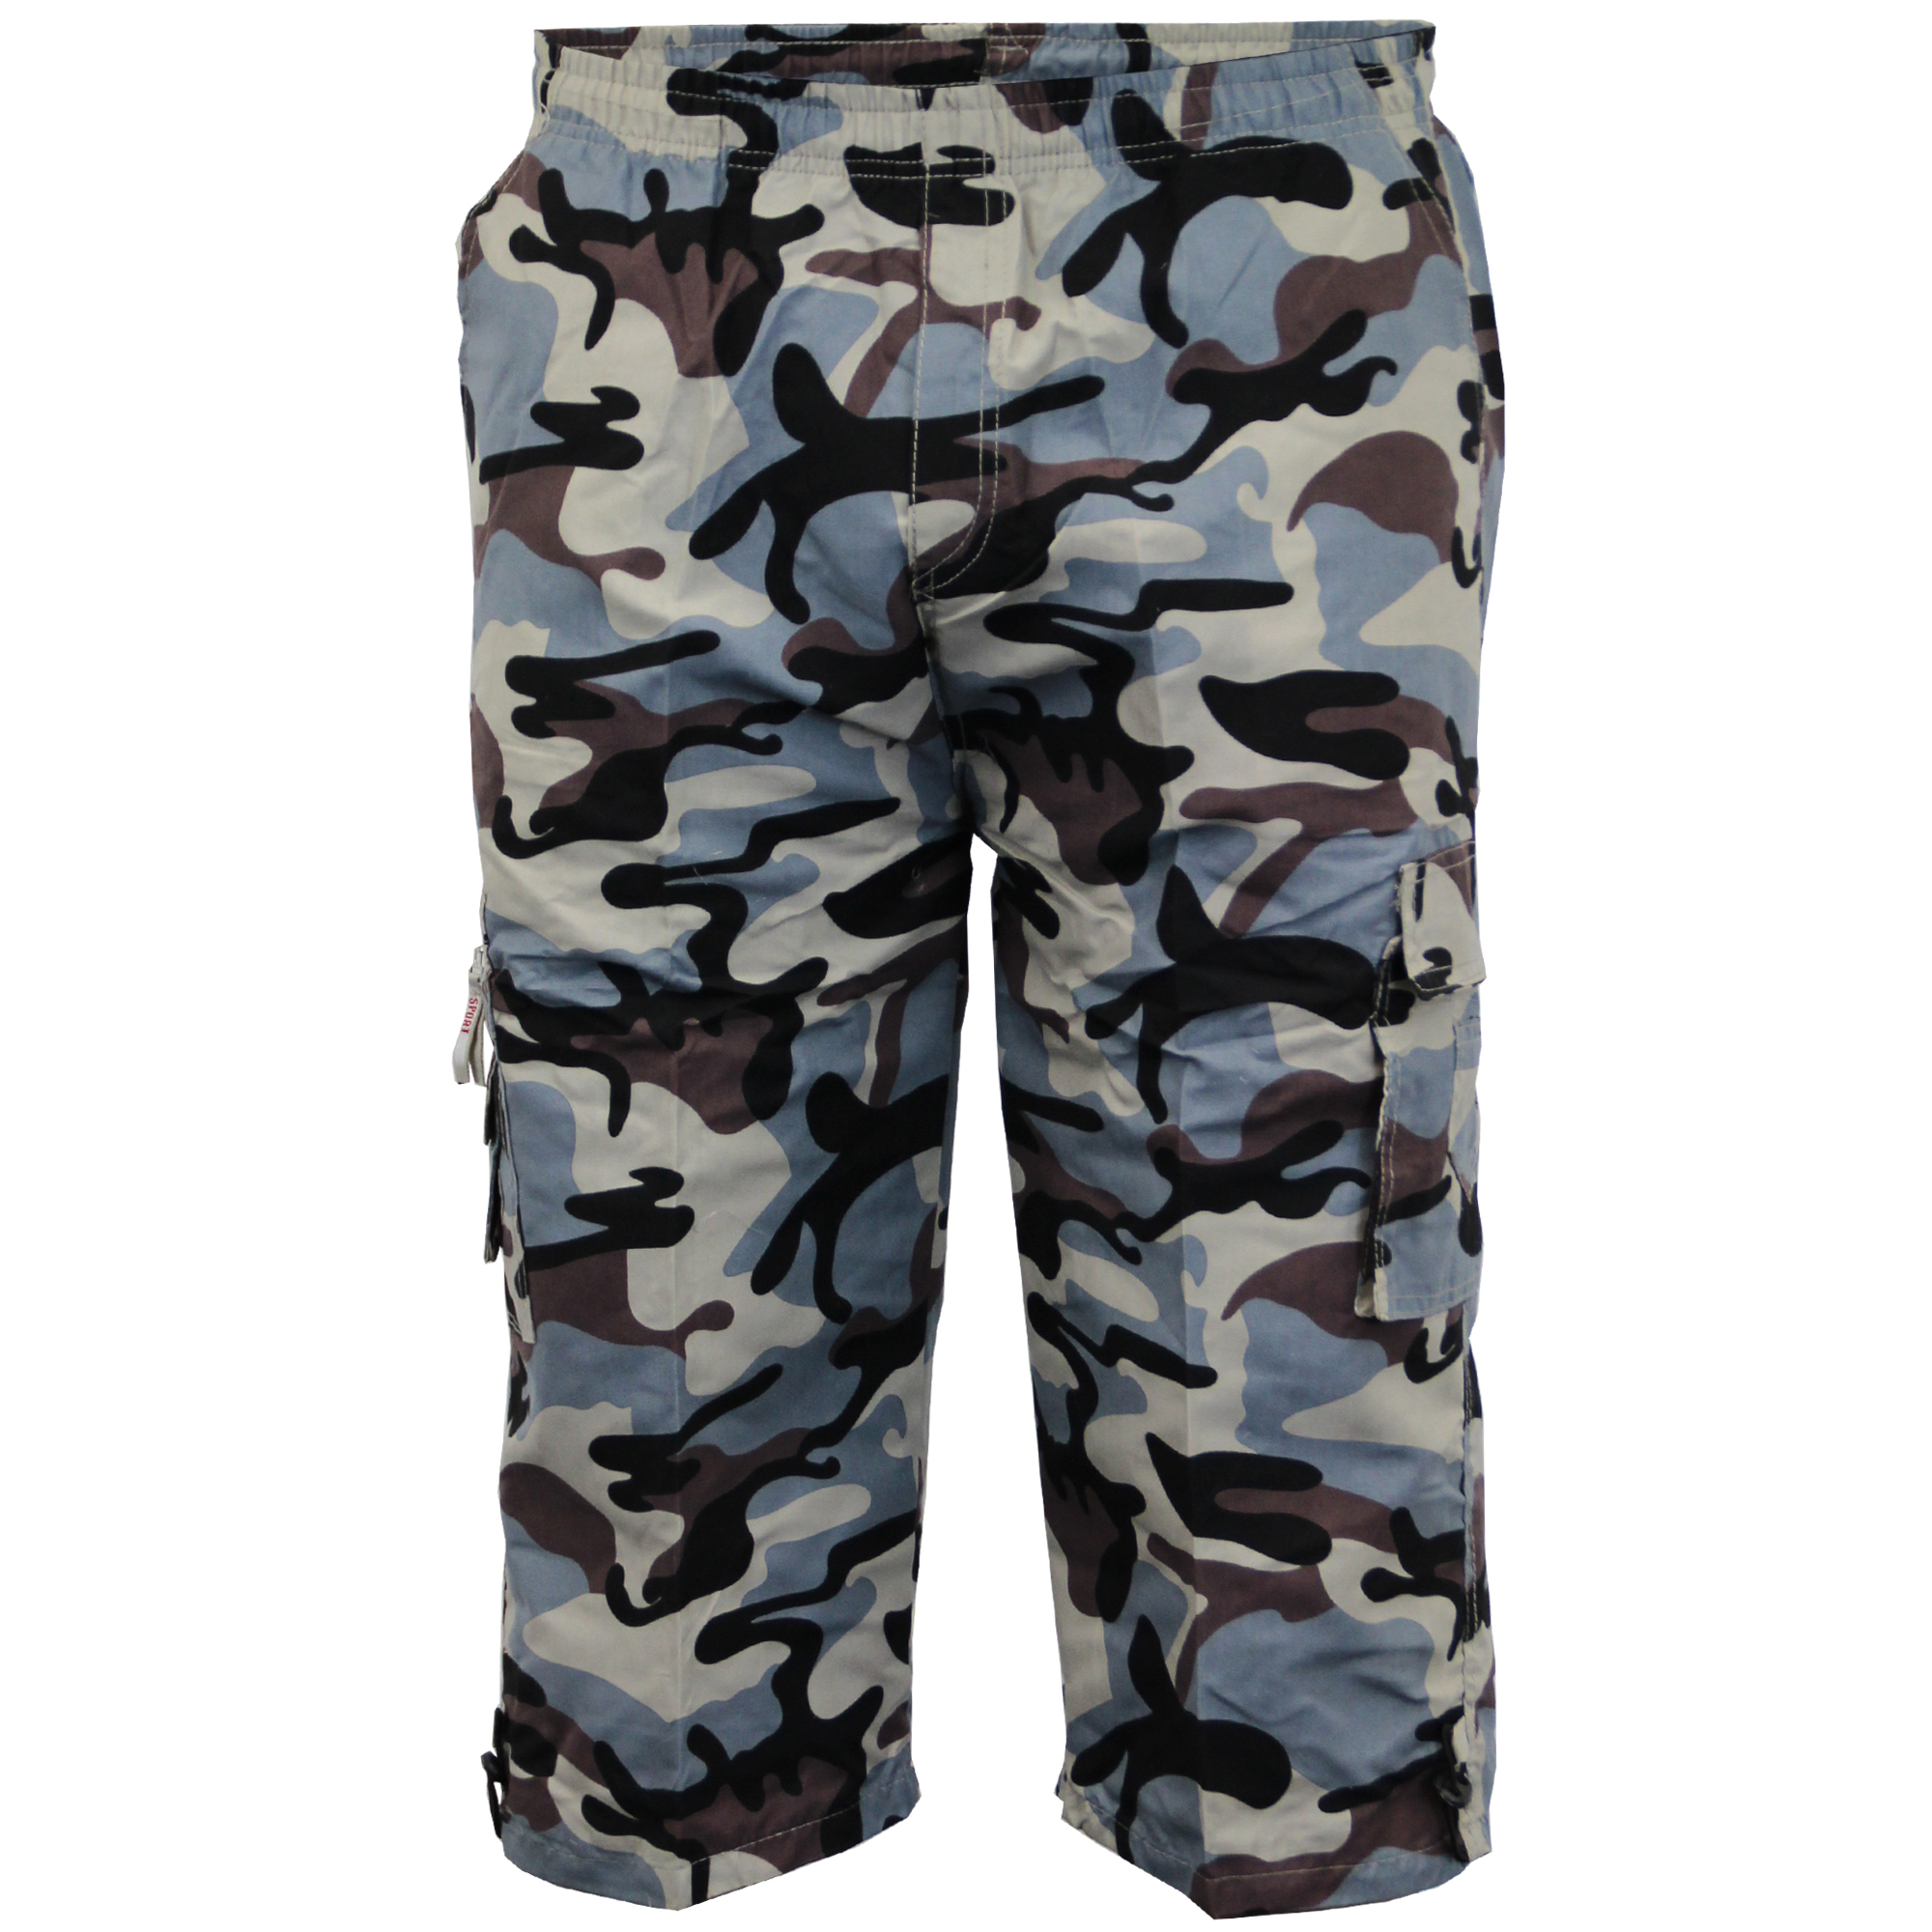 Mens-Camouflage-Combat-Cargo-Shorts-3-4-Length-Army-Military-Sports-Summer-New thumbnail 5